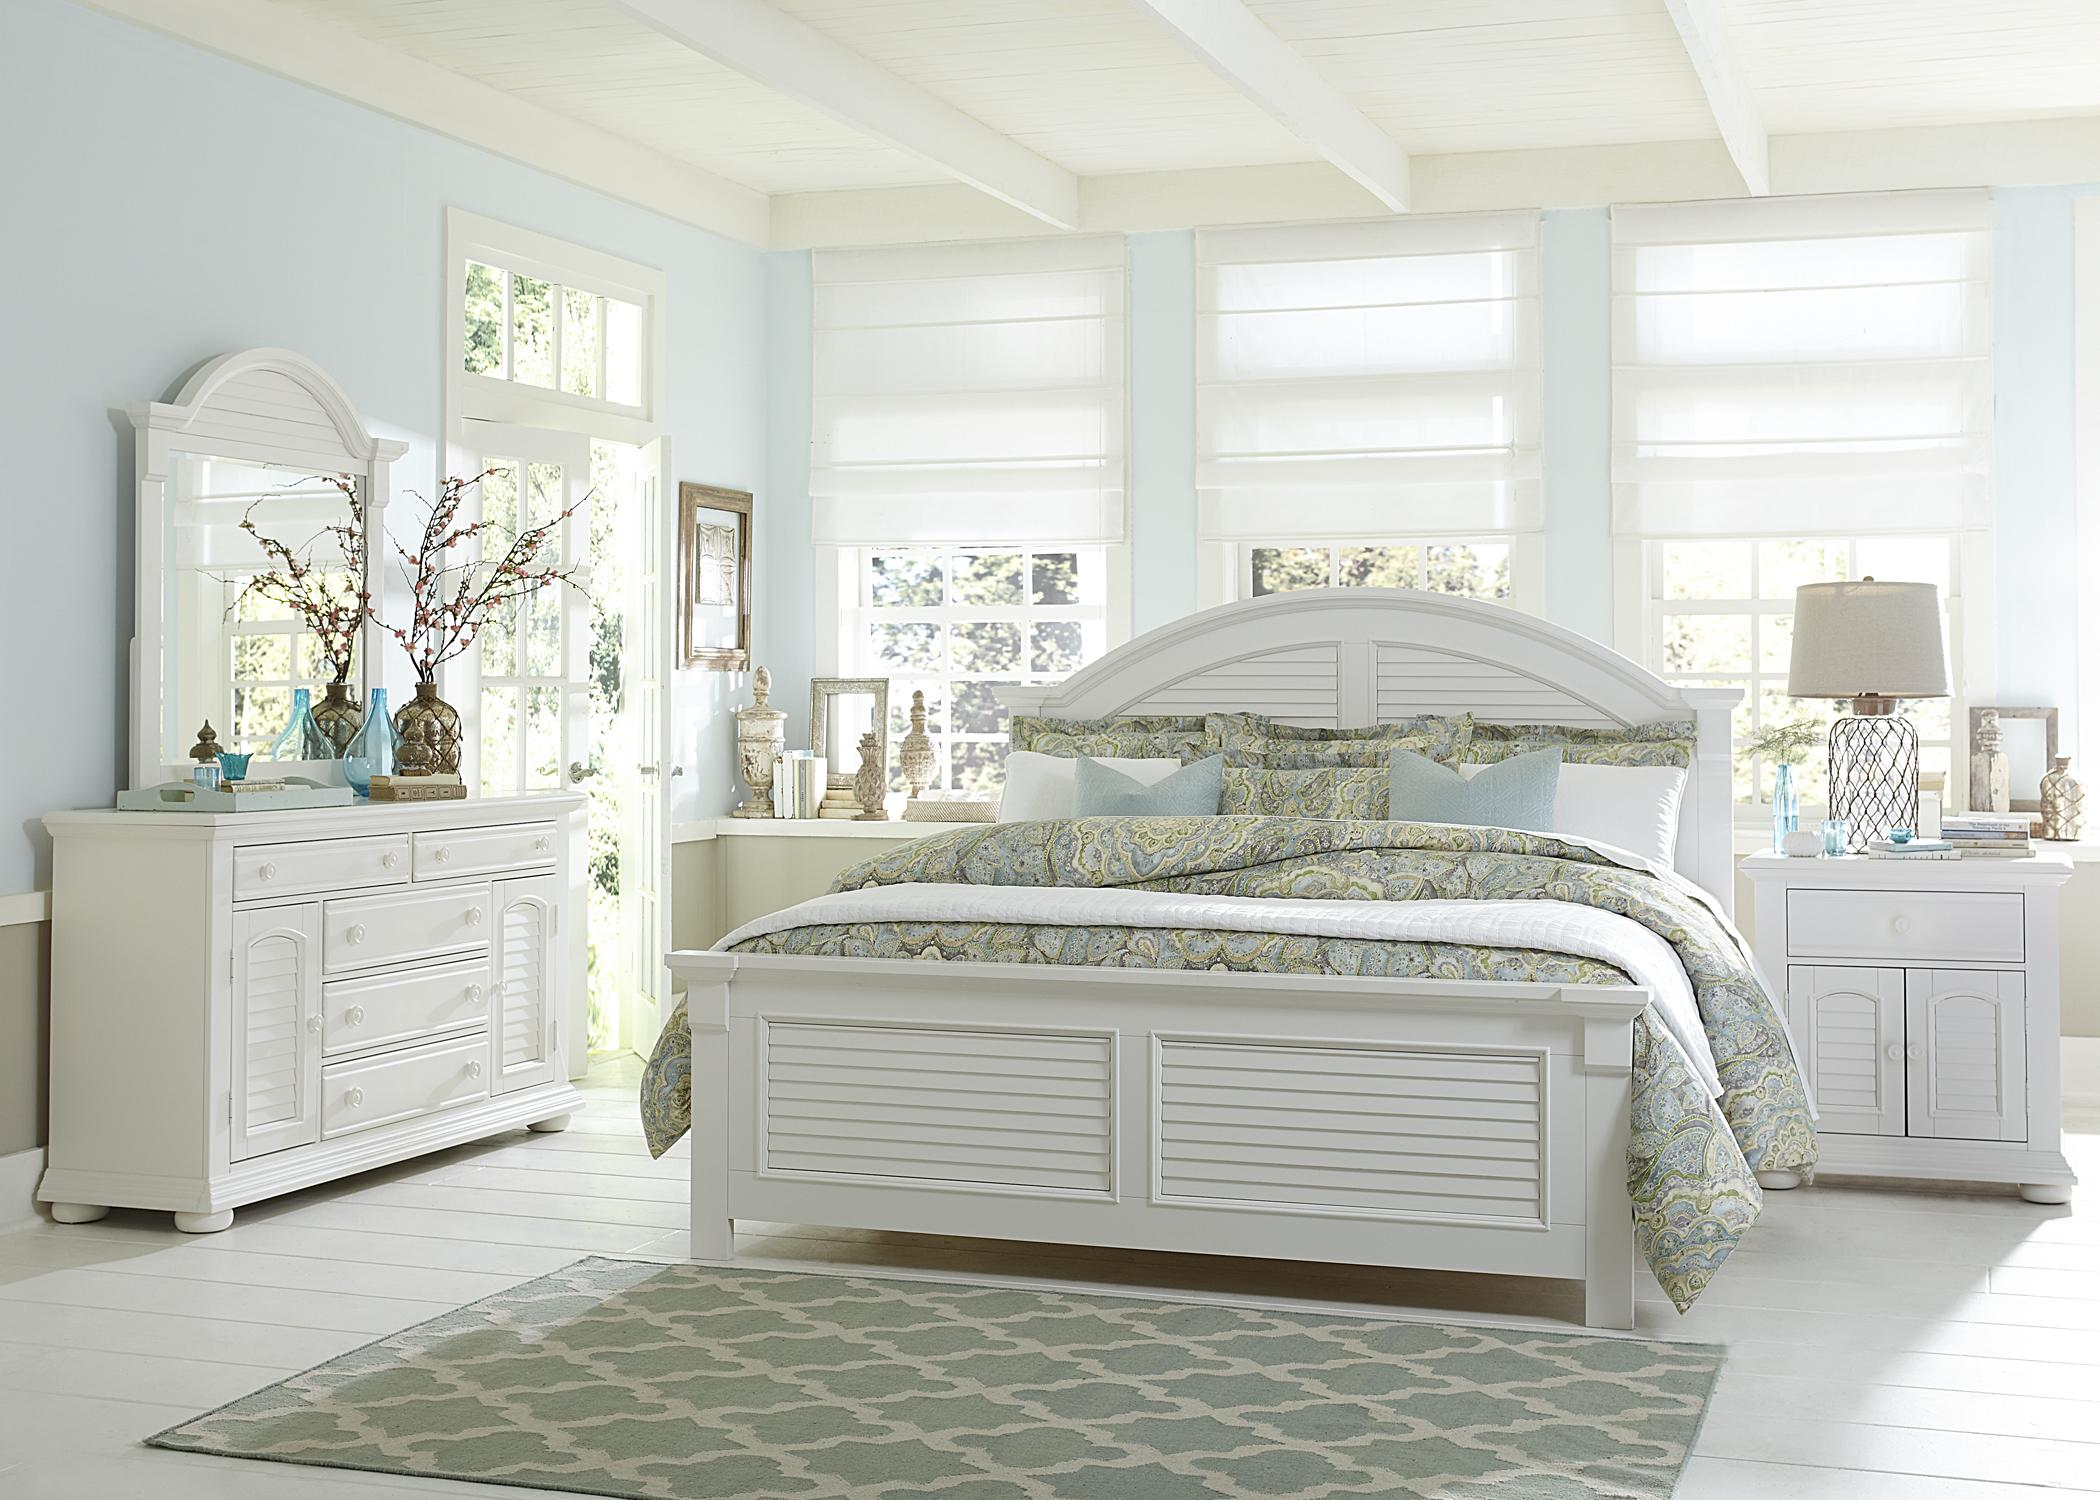 Summer House Queen Bedroom Group by Libby at Walker's Furniture